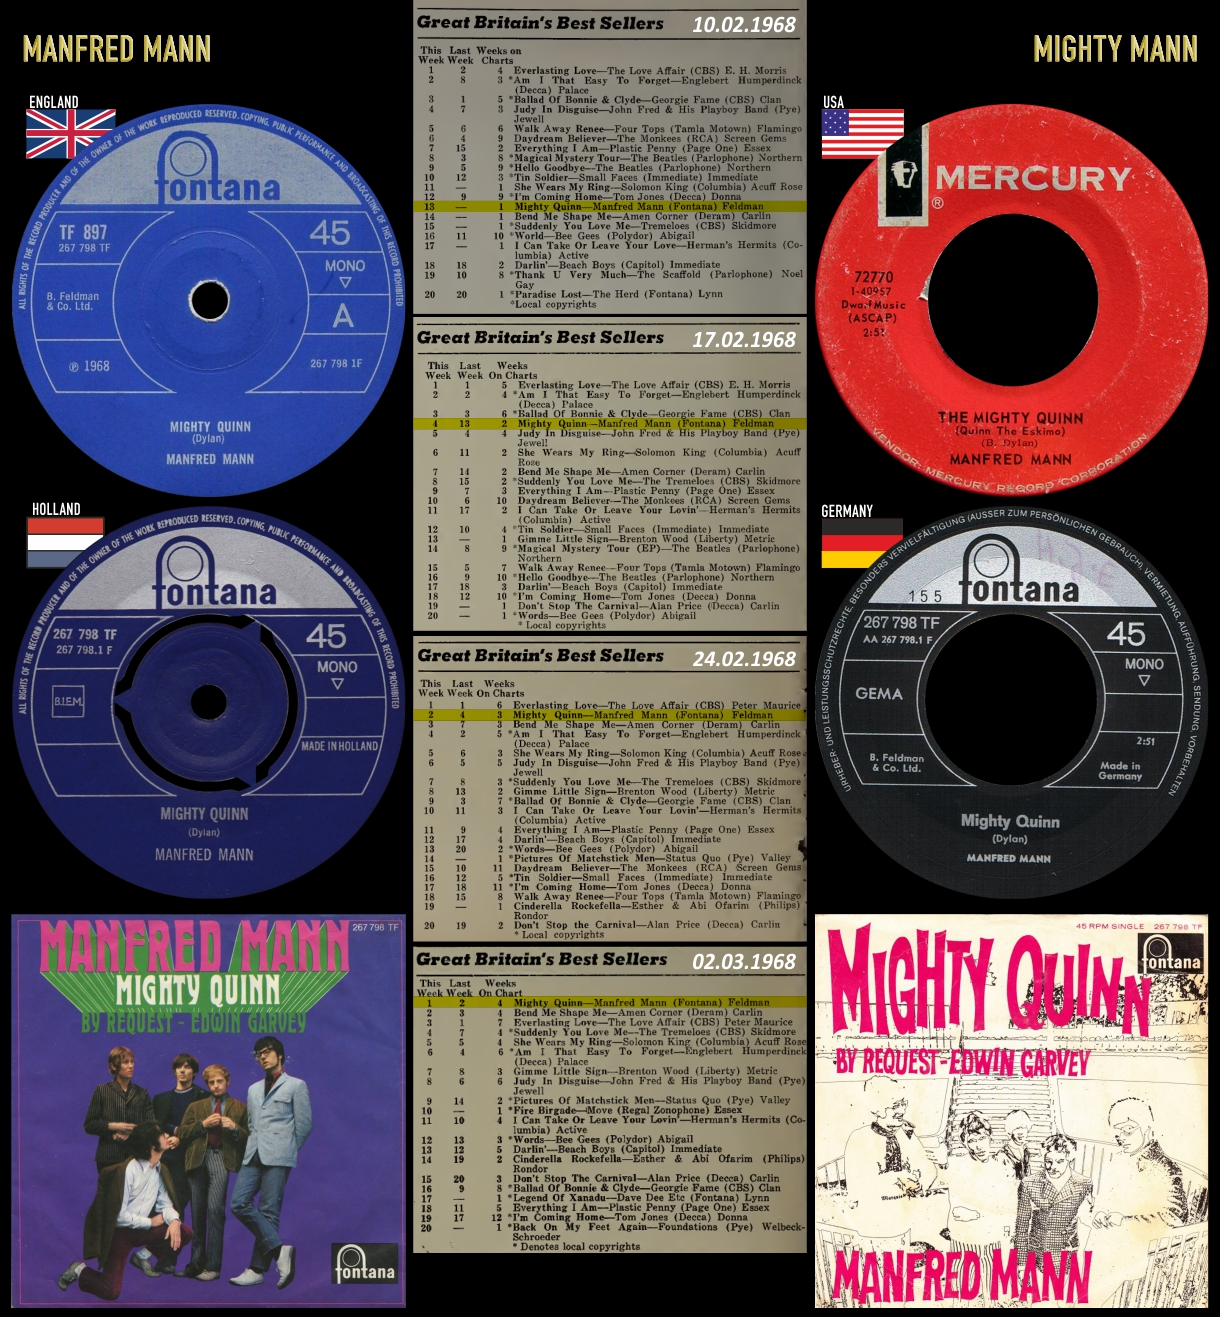 680302_Manfred Mann_Mighty Quinn